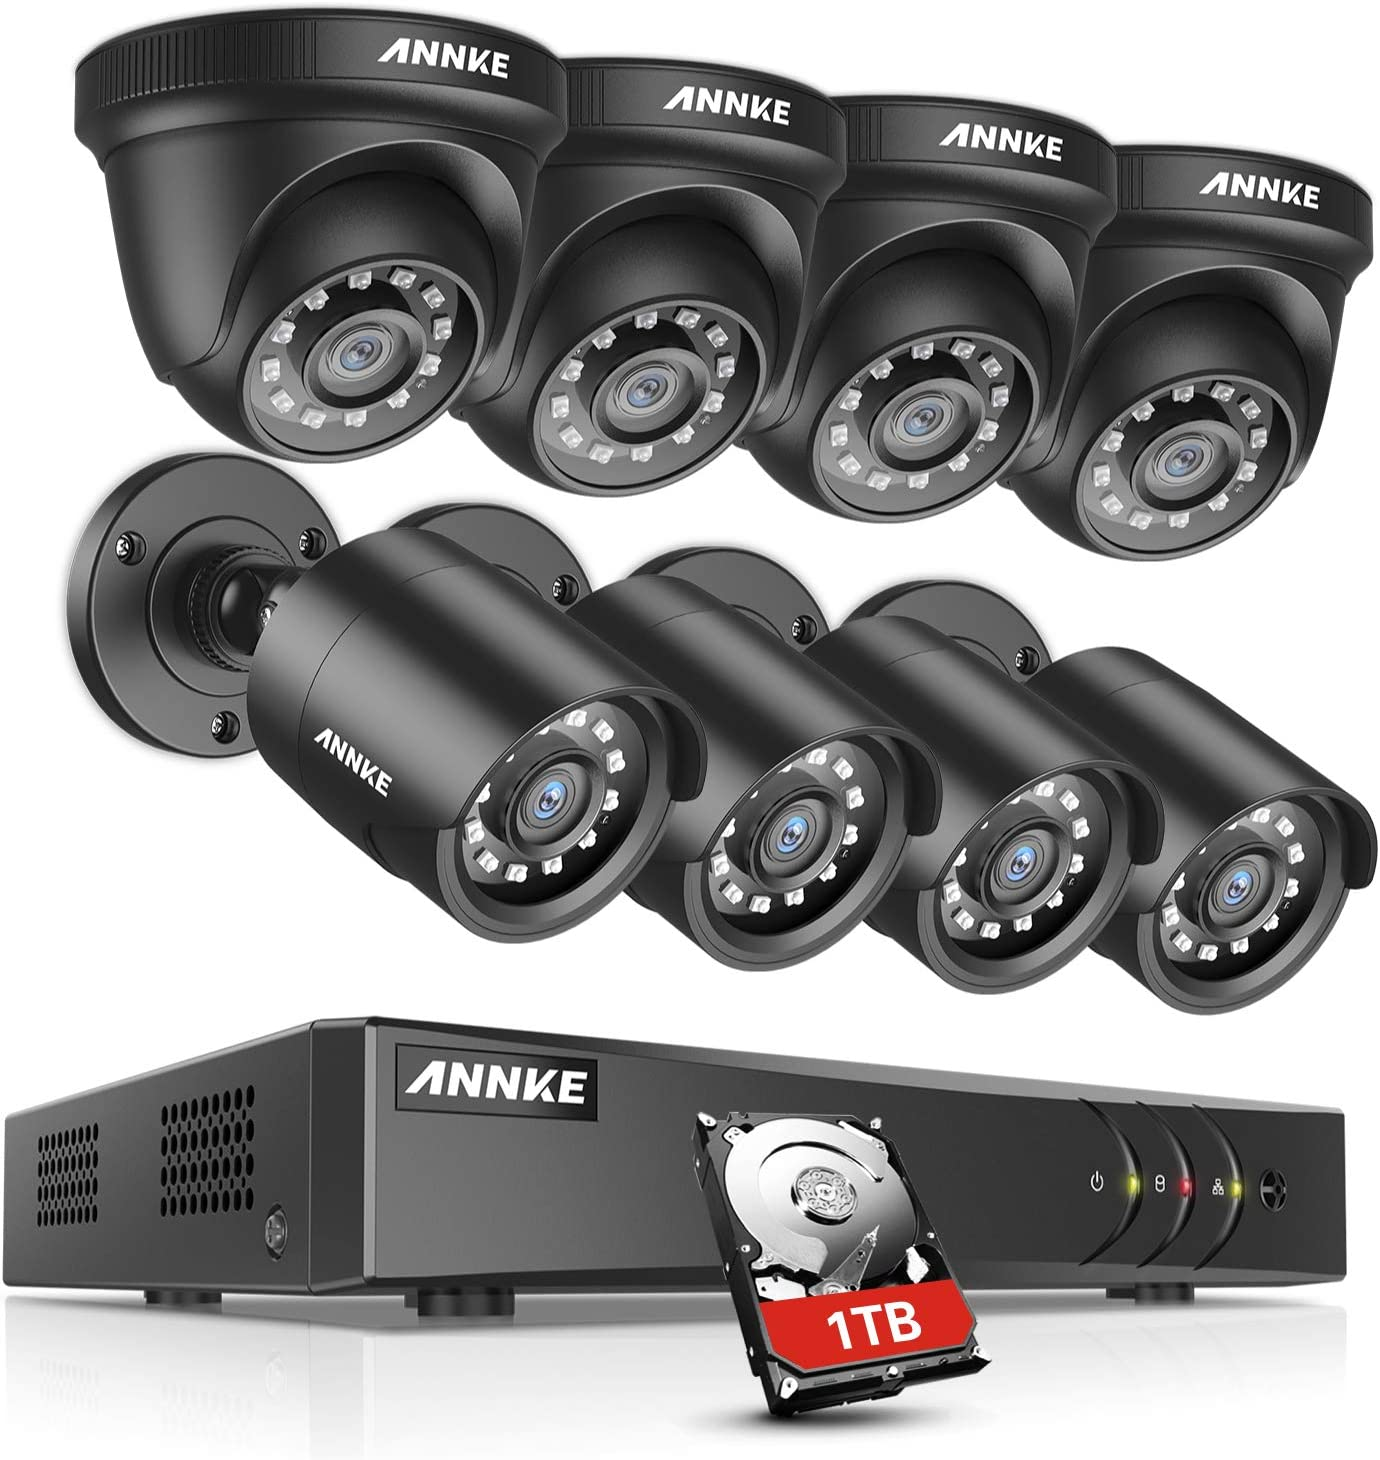 ANNKE 8CH Security System 5MP Lite DVR Recorder with 1TB HDD and (8) 1080P Weatherproof Camera with Super Night Vision, QR Code Scan, Plug & Play, HDMI Output-Y200